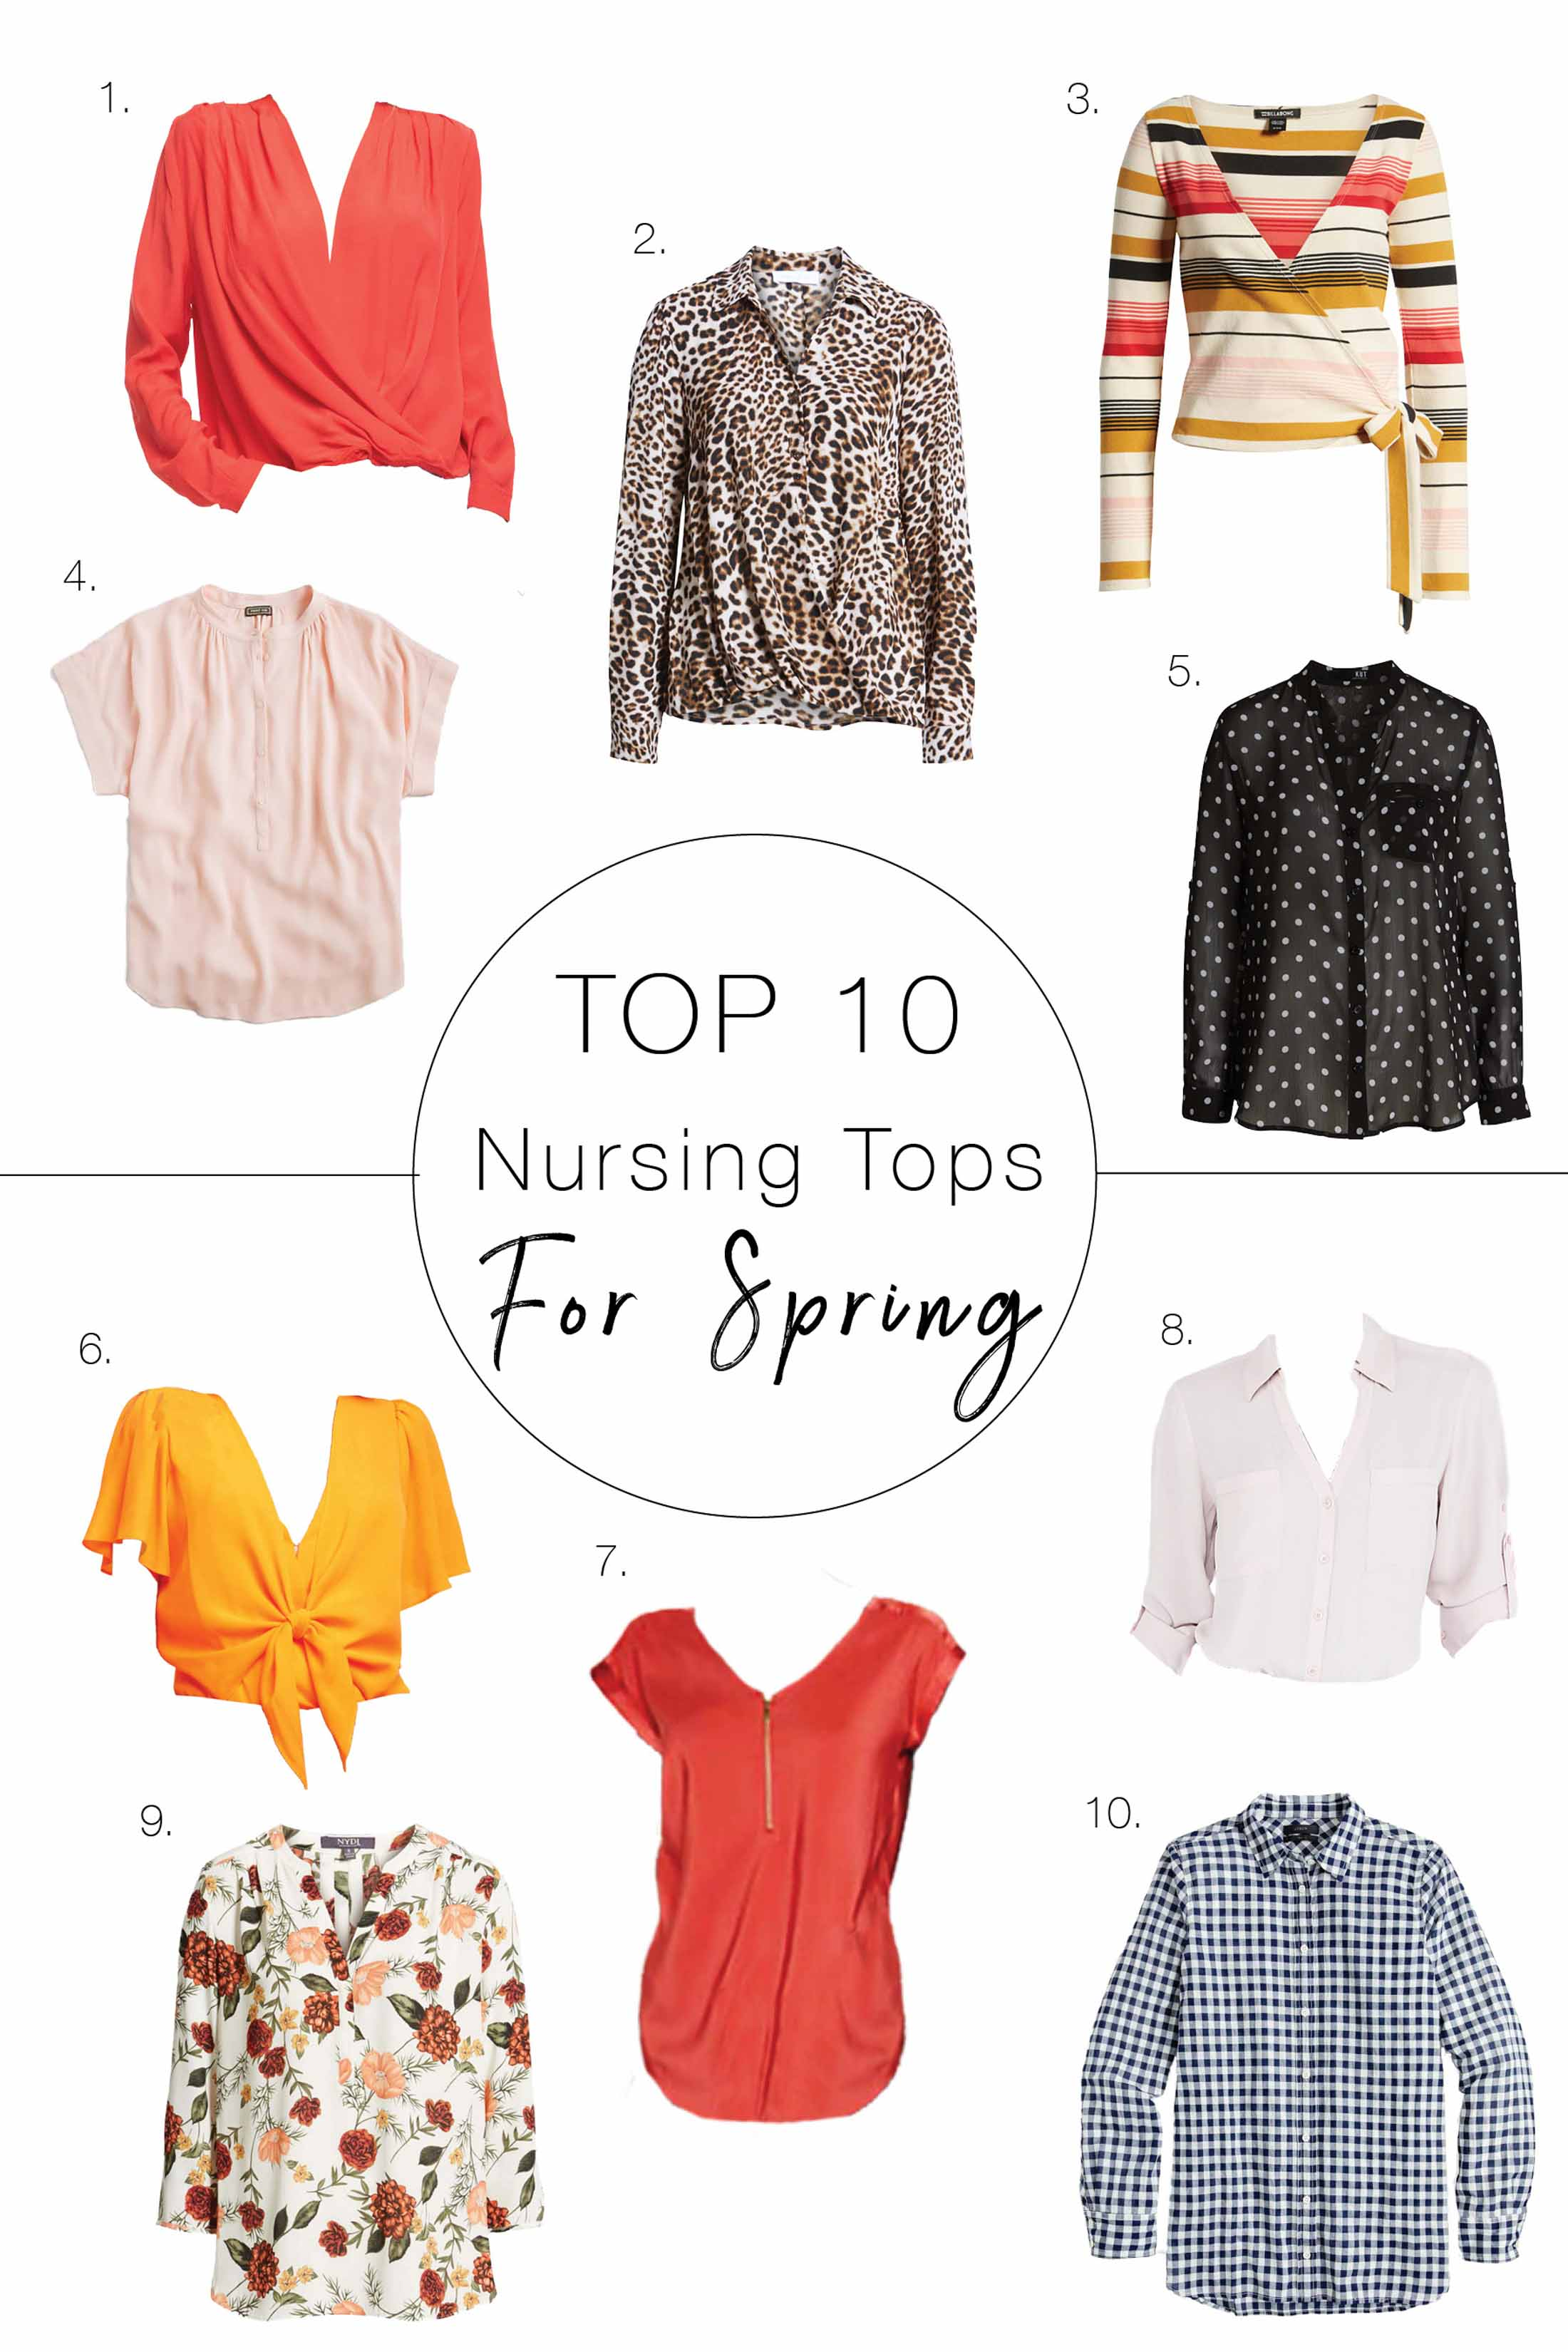 Pull it up, push it down or unbutton it...that's what we need in cute nursing tops for spring & summer. Our top 10 shirts for breastfeeding mamas — inside.